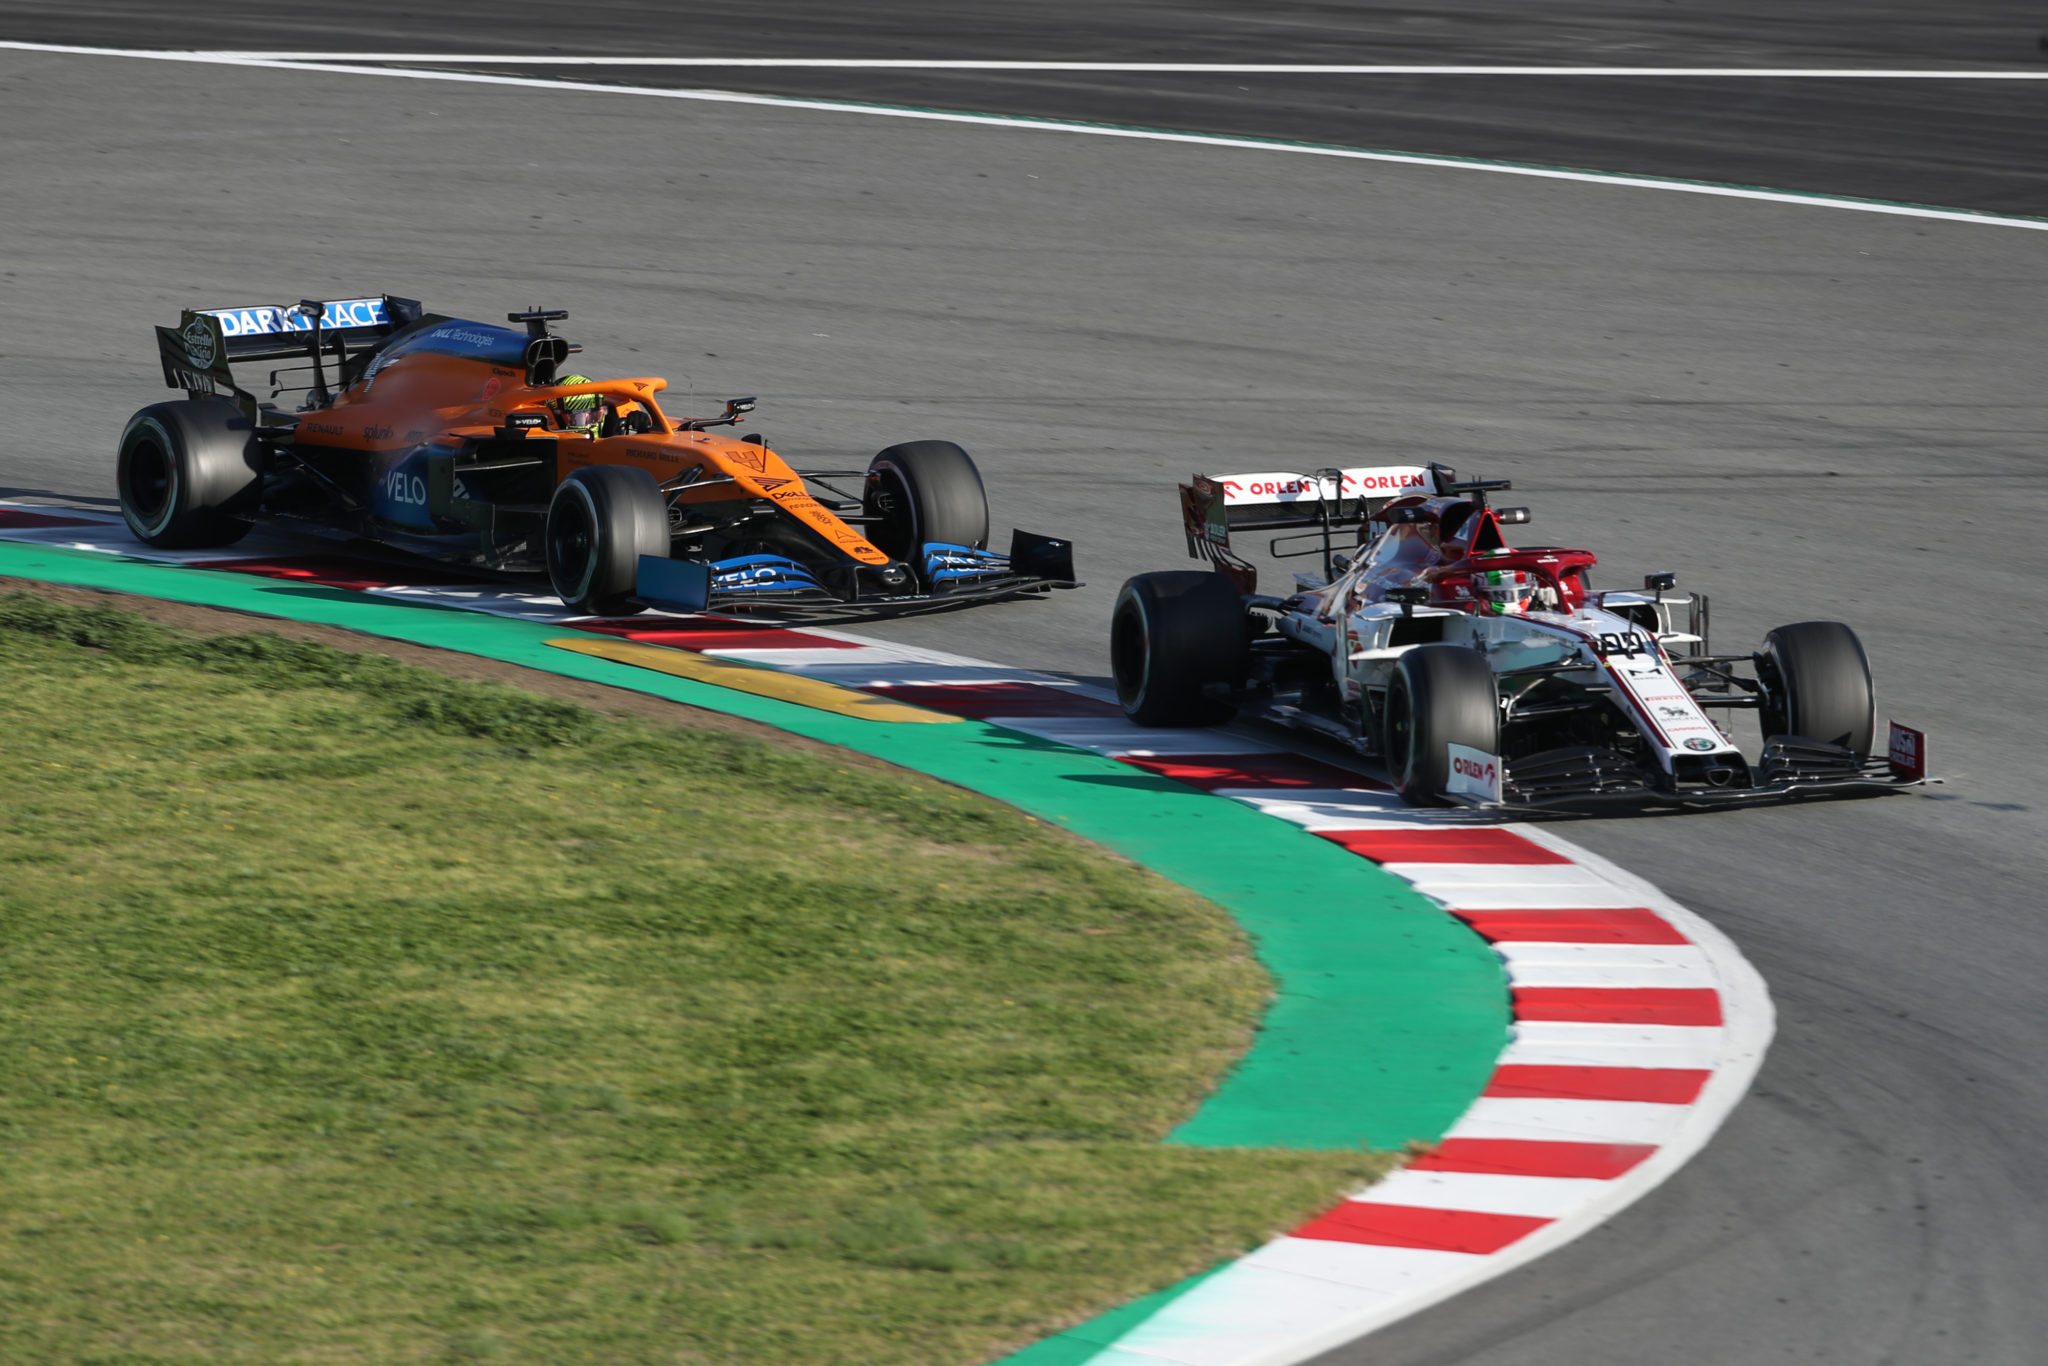 Giovinazzi 'not 100% happy' after tough final day